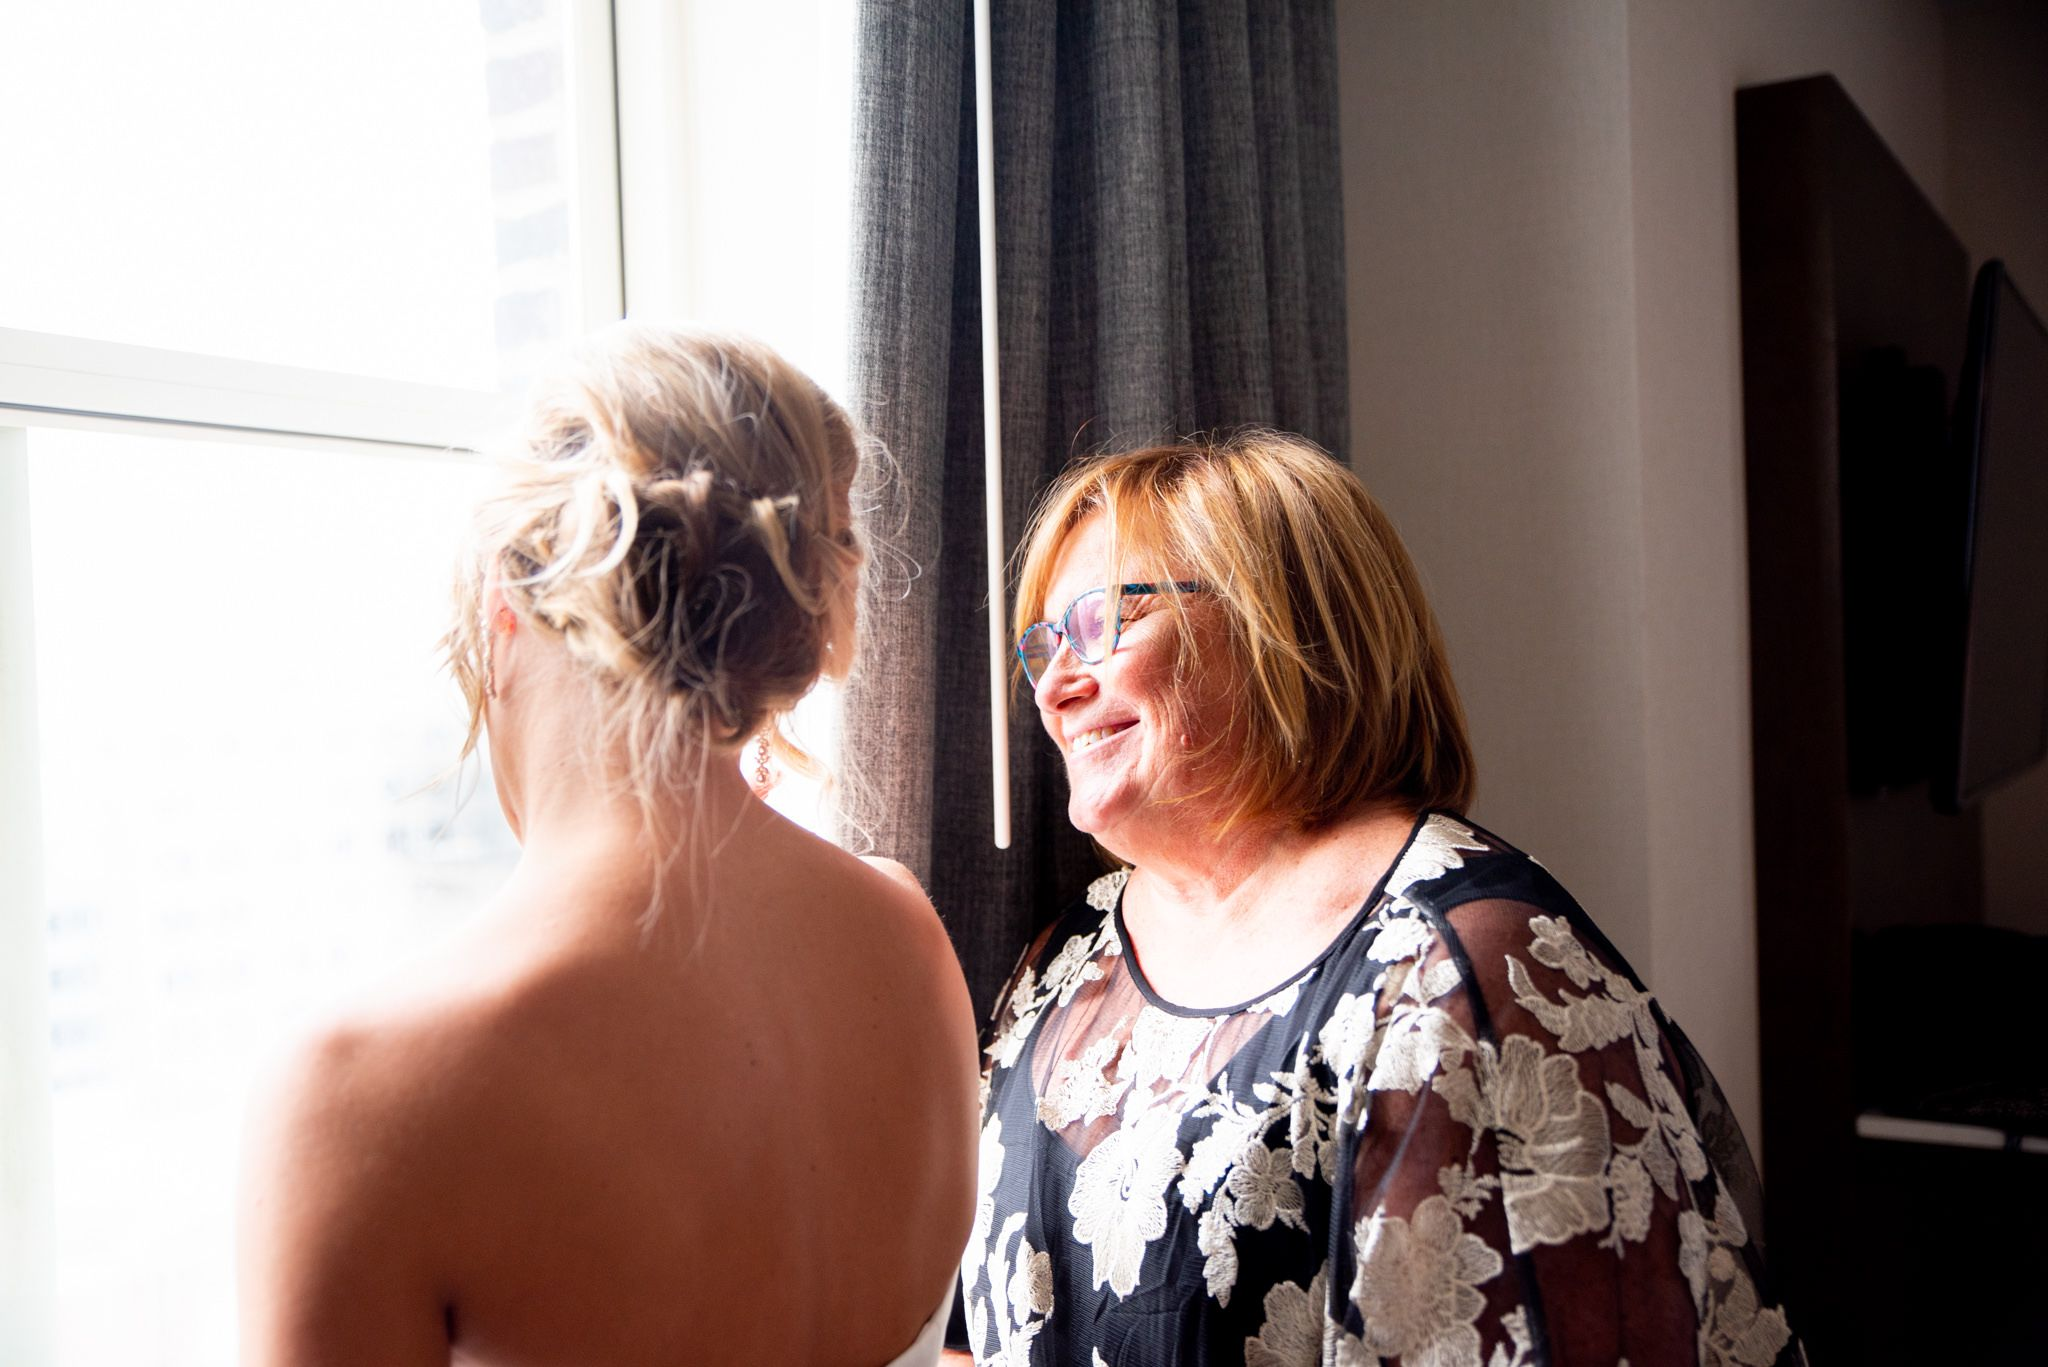 mother of the bride smiling at her daughter while getting ready next to a window